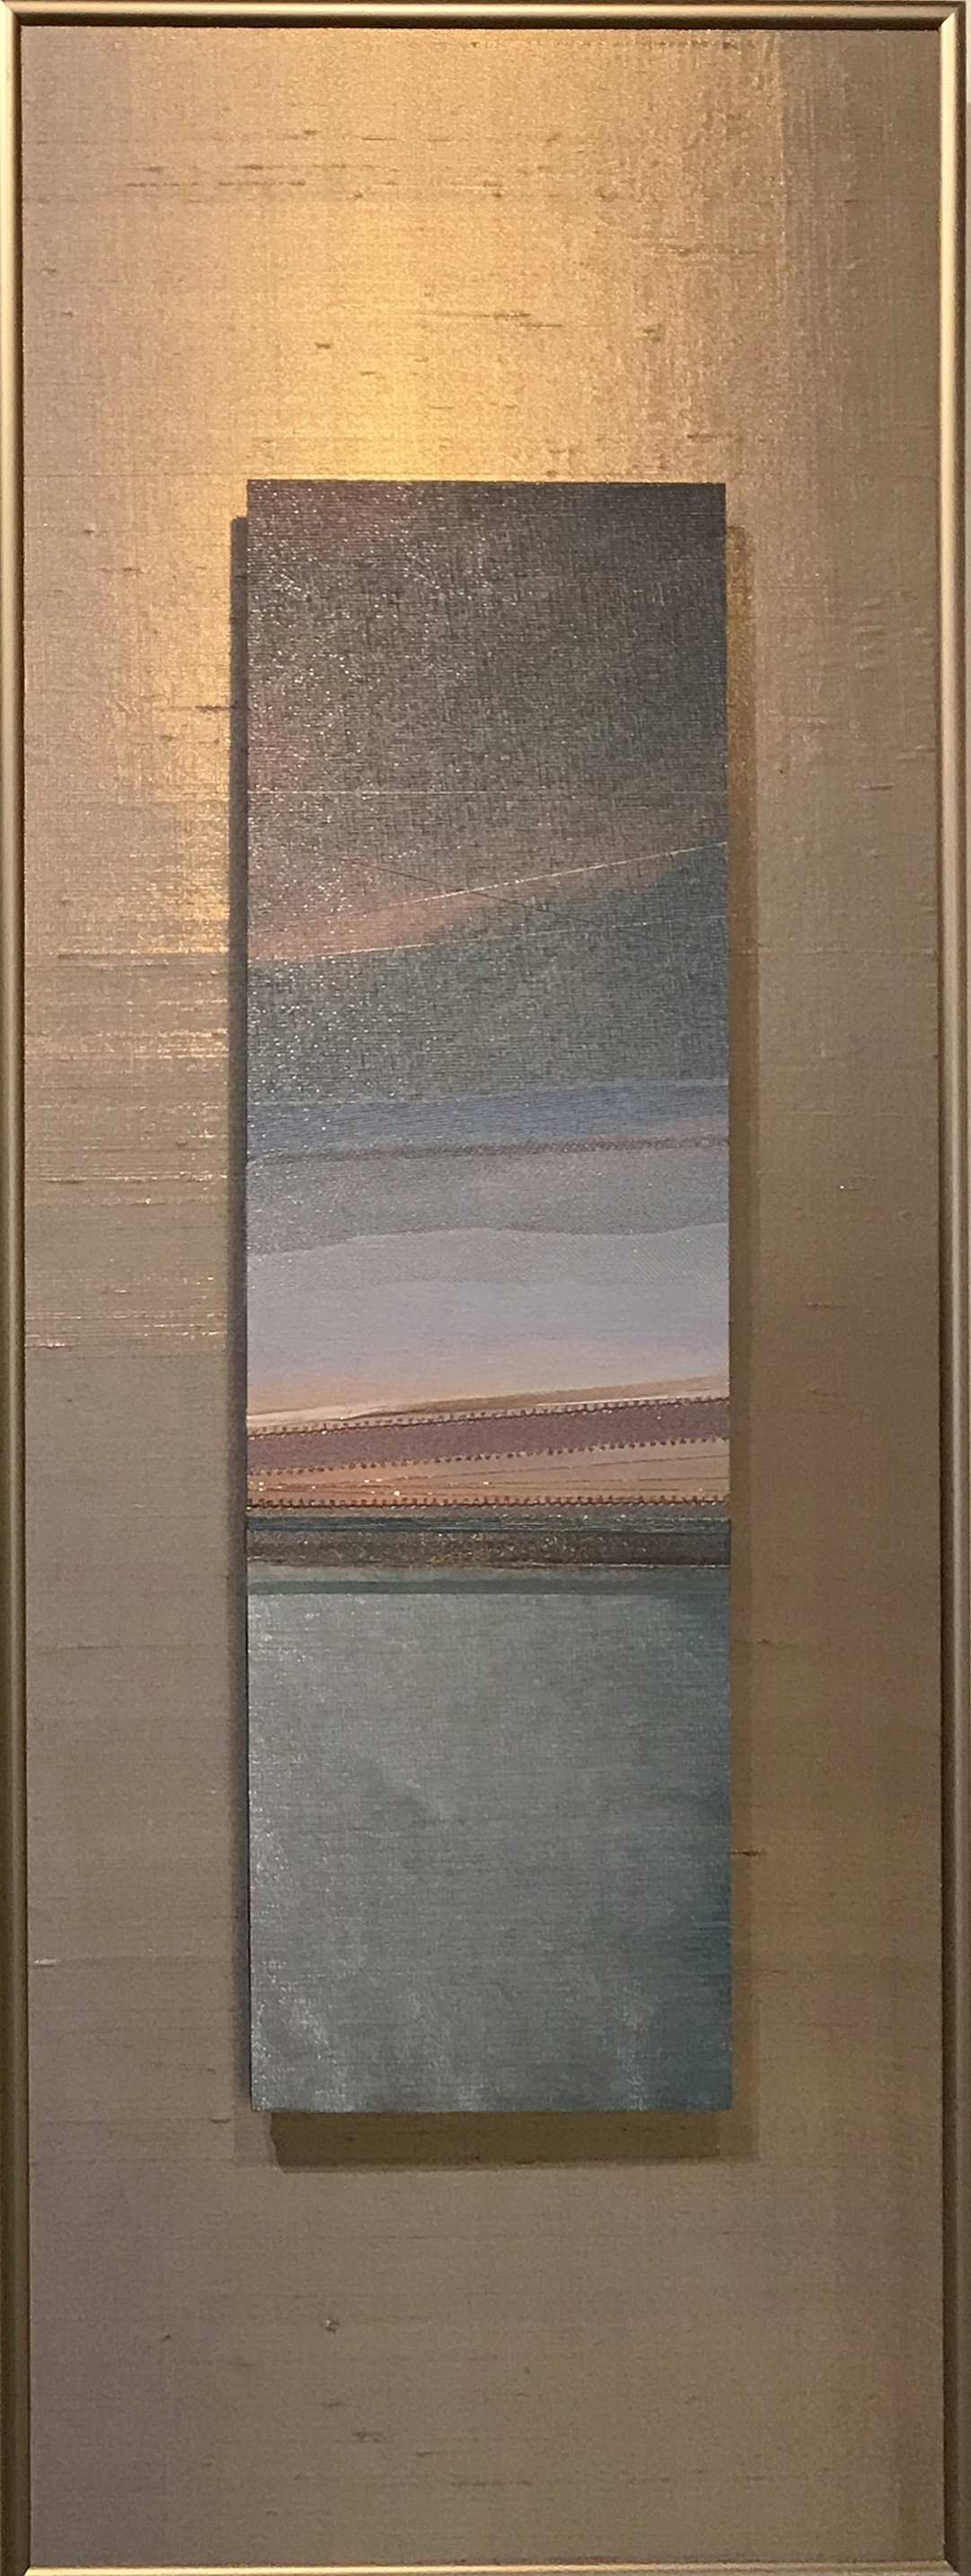 "Landscapes Series    Hazy Ocean   12"" x 32""  Brushed Metal Print with Silks  2018"